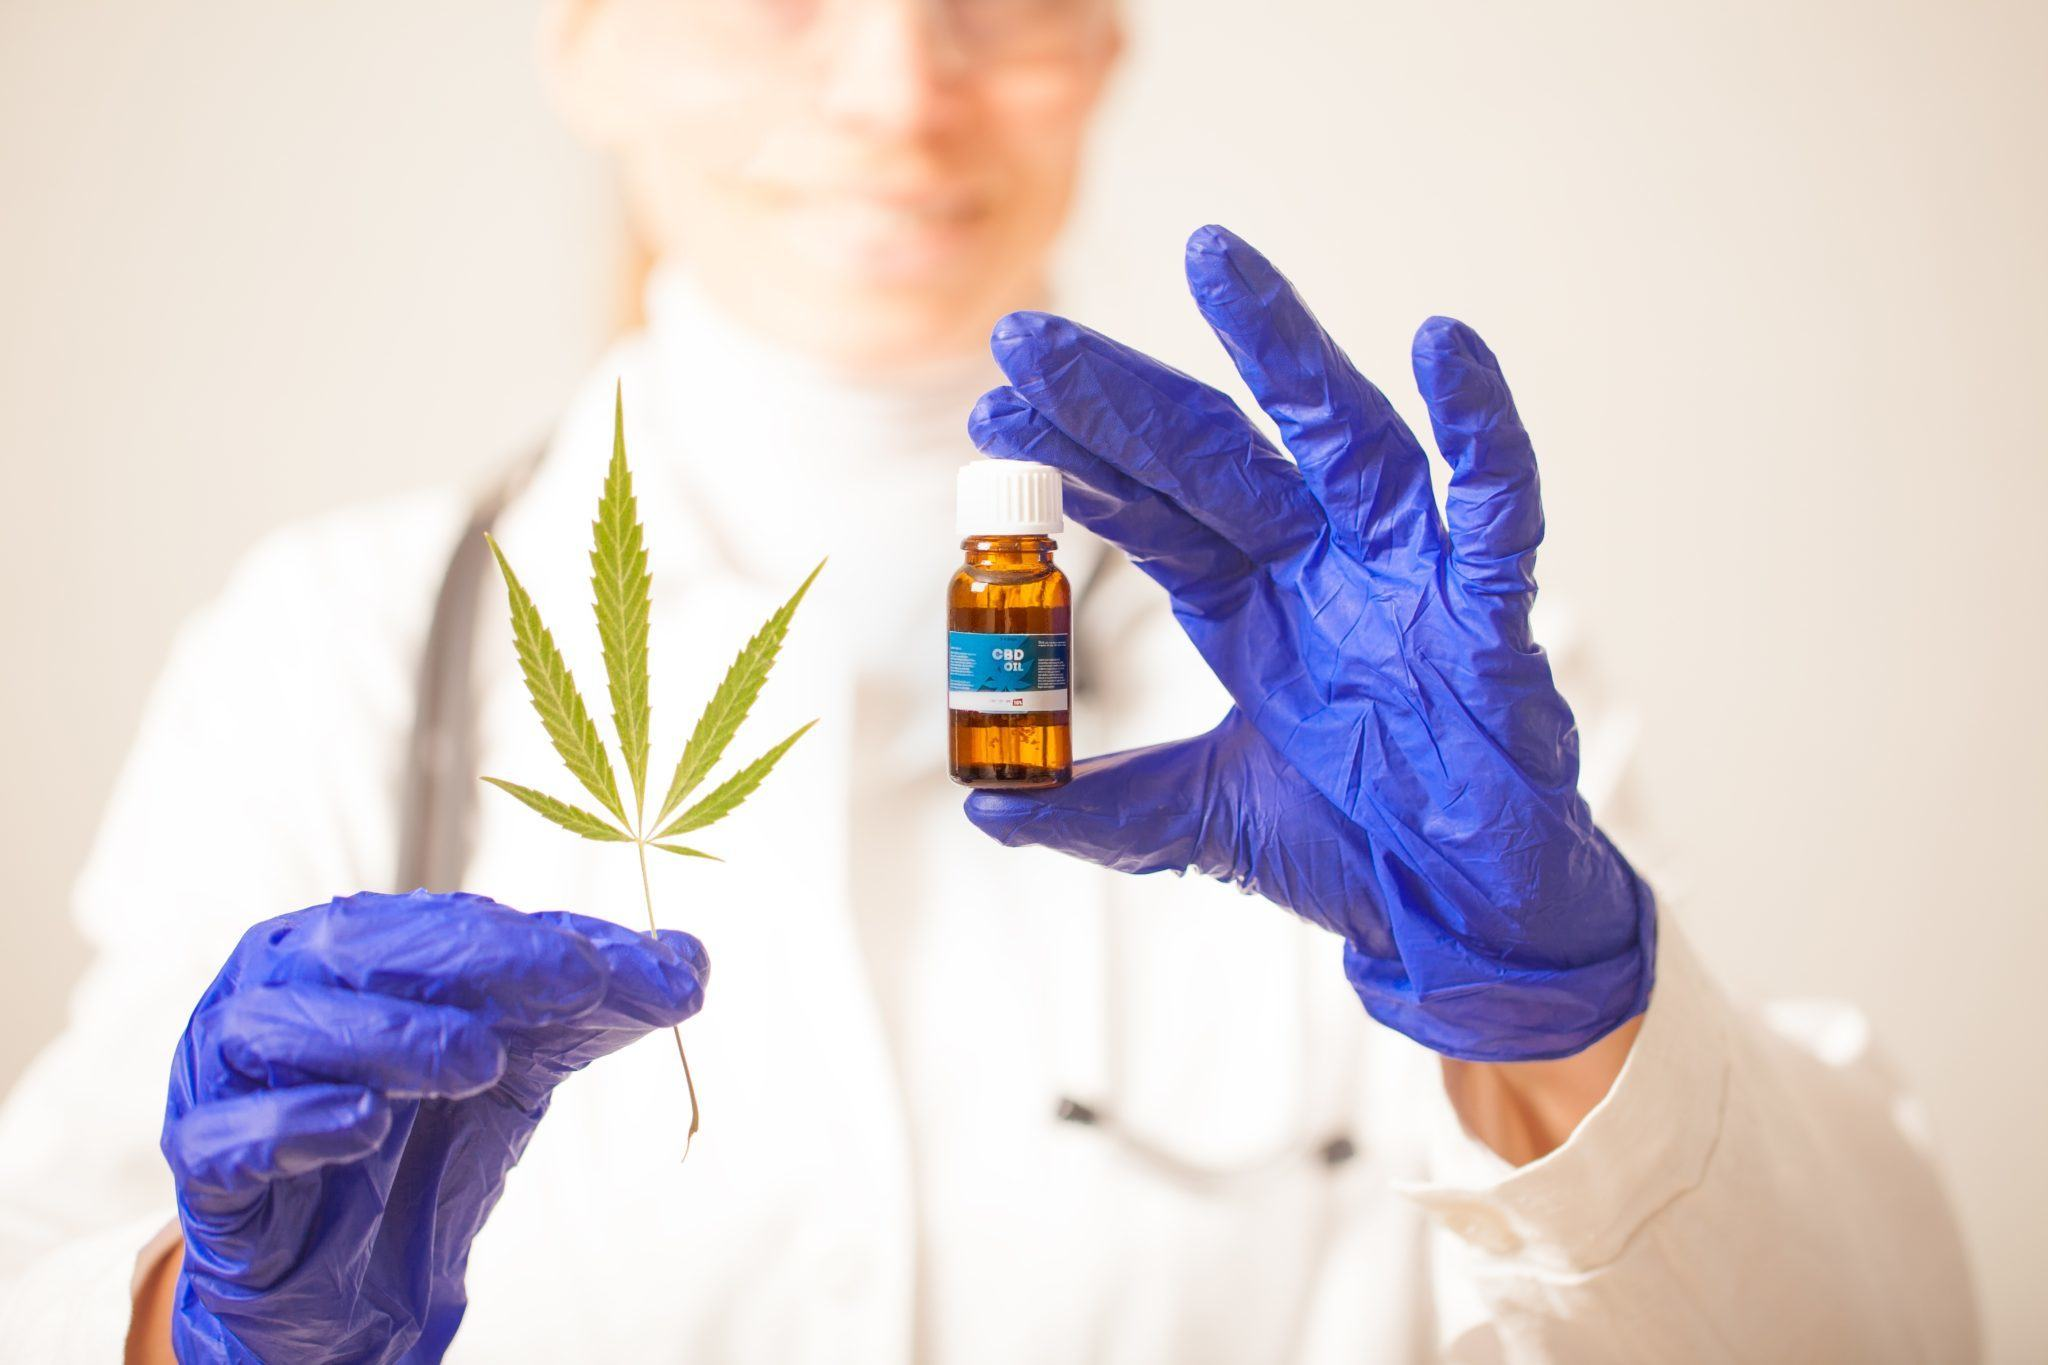 There's growing demand on cannabis & hemp product testing labs, but also renewed attention on their inconsistencies too. Photo: A gloved scientist with a vial of CBD and a hemp leaf.